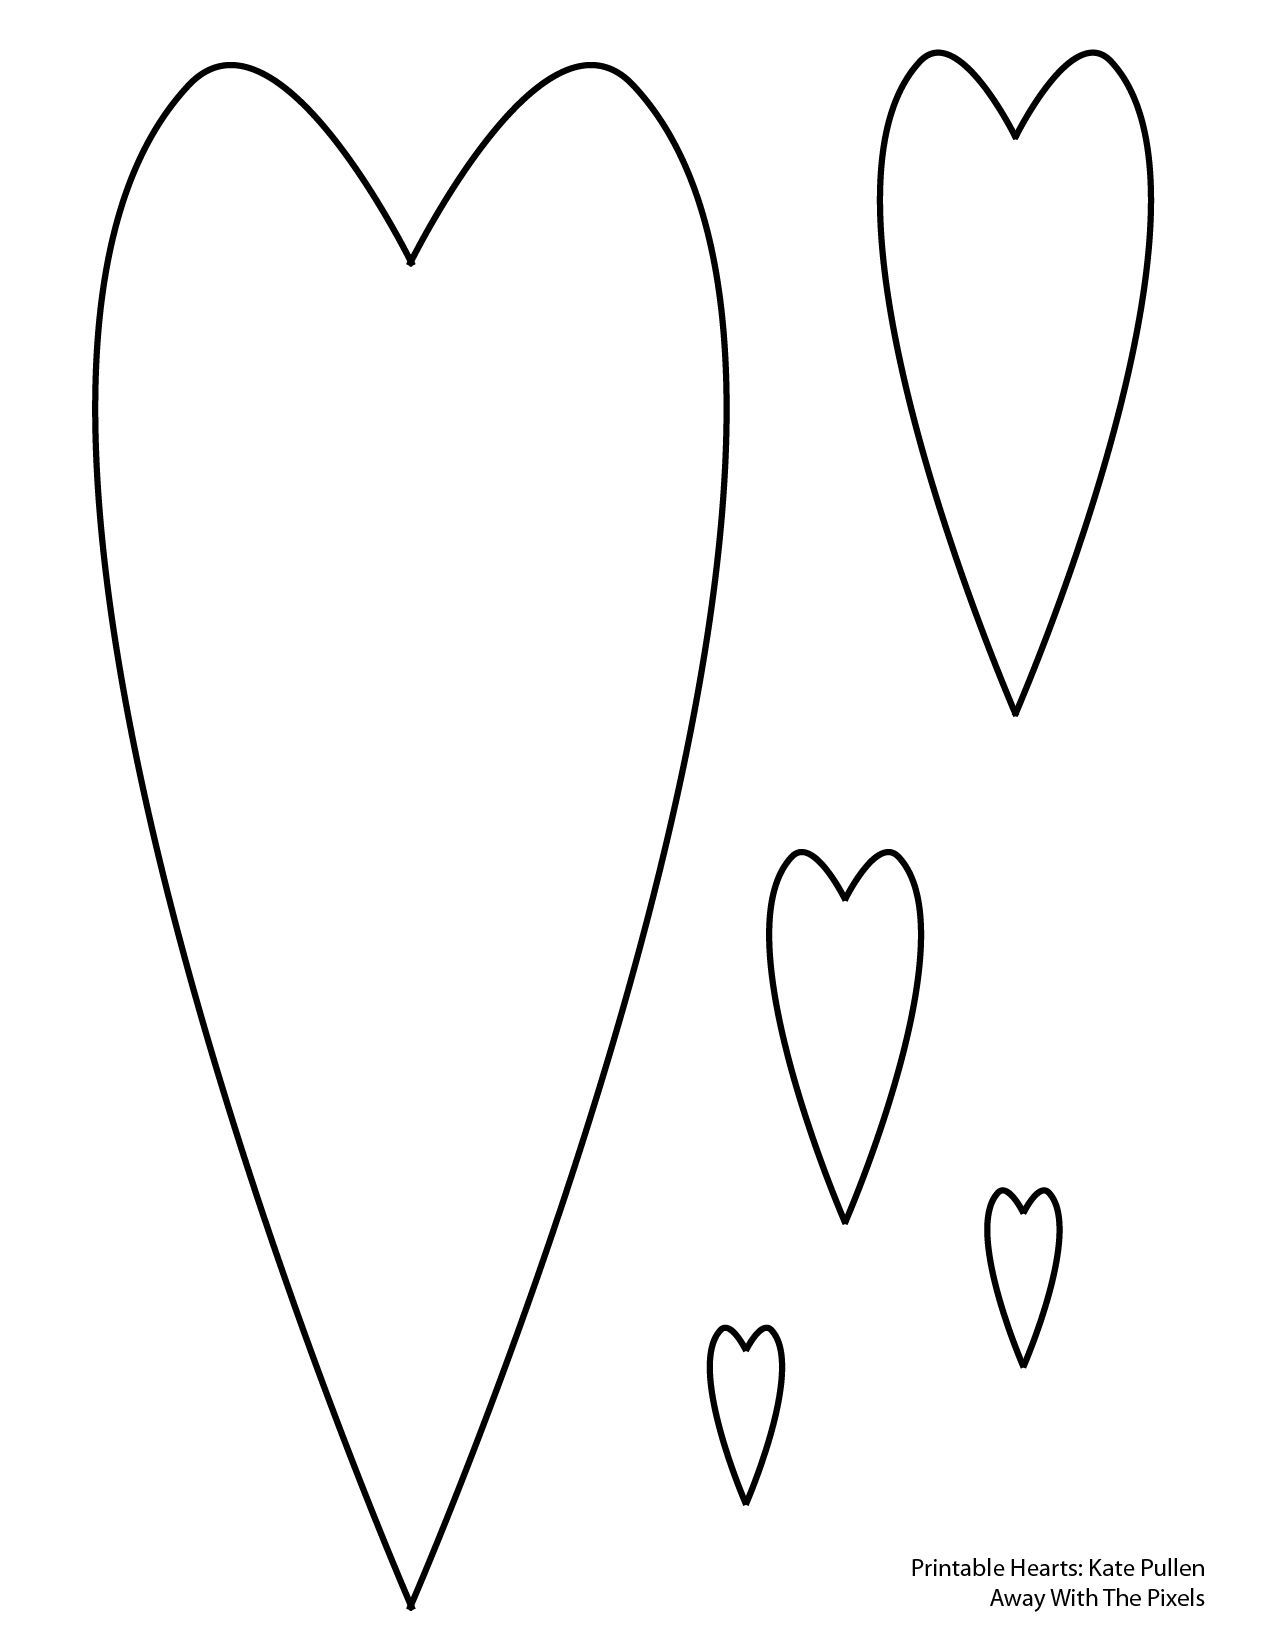 6 Free Printable Heart Templates In 2020 Heart Shapes Template Heart Template Printable Heart Template